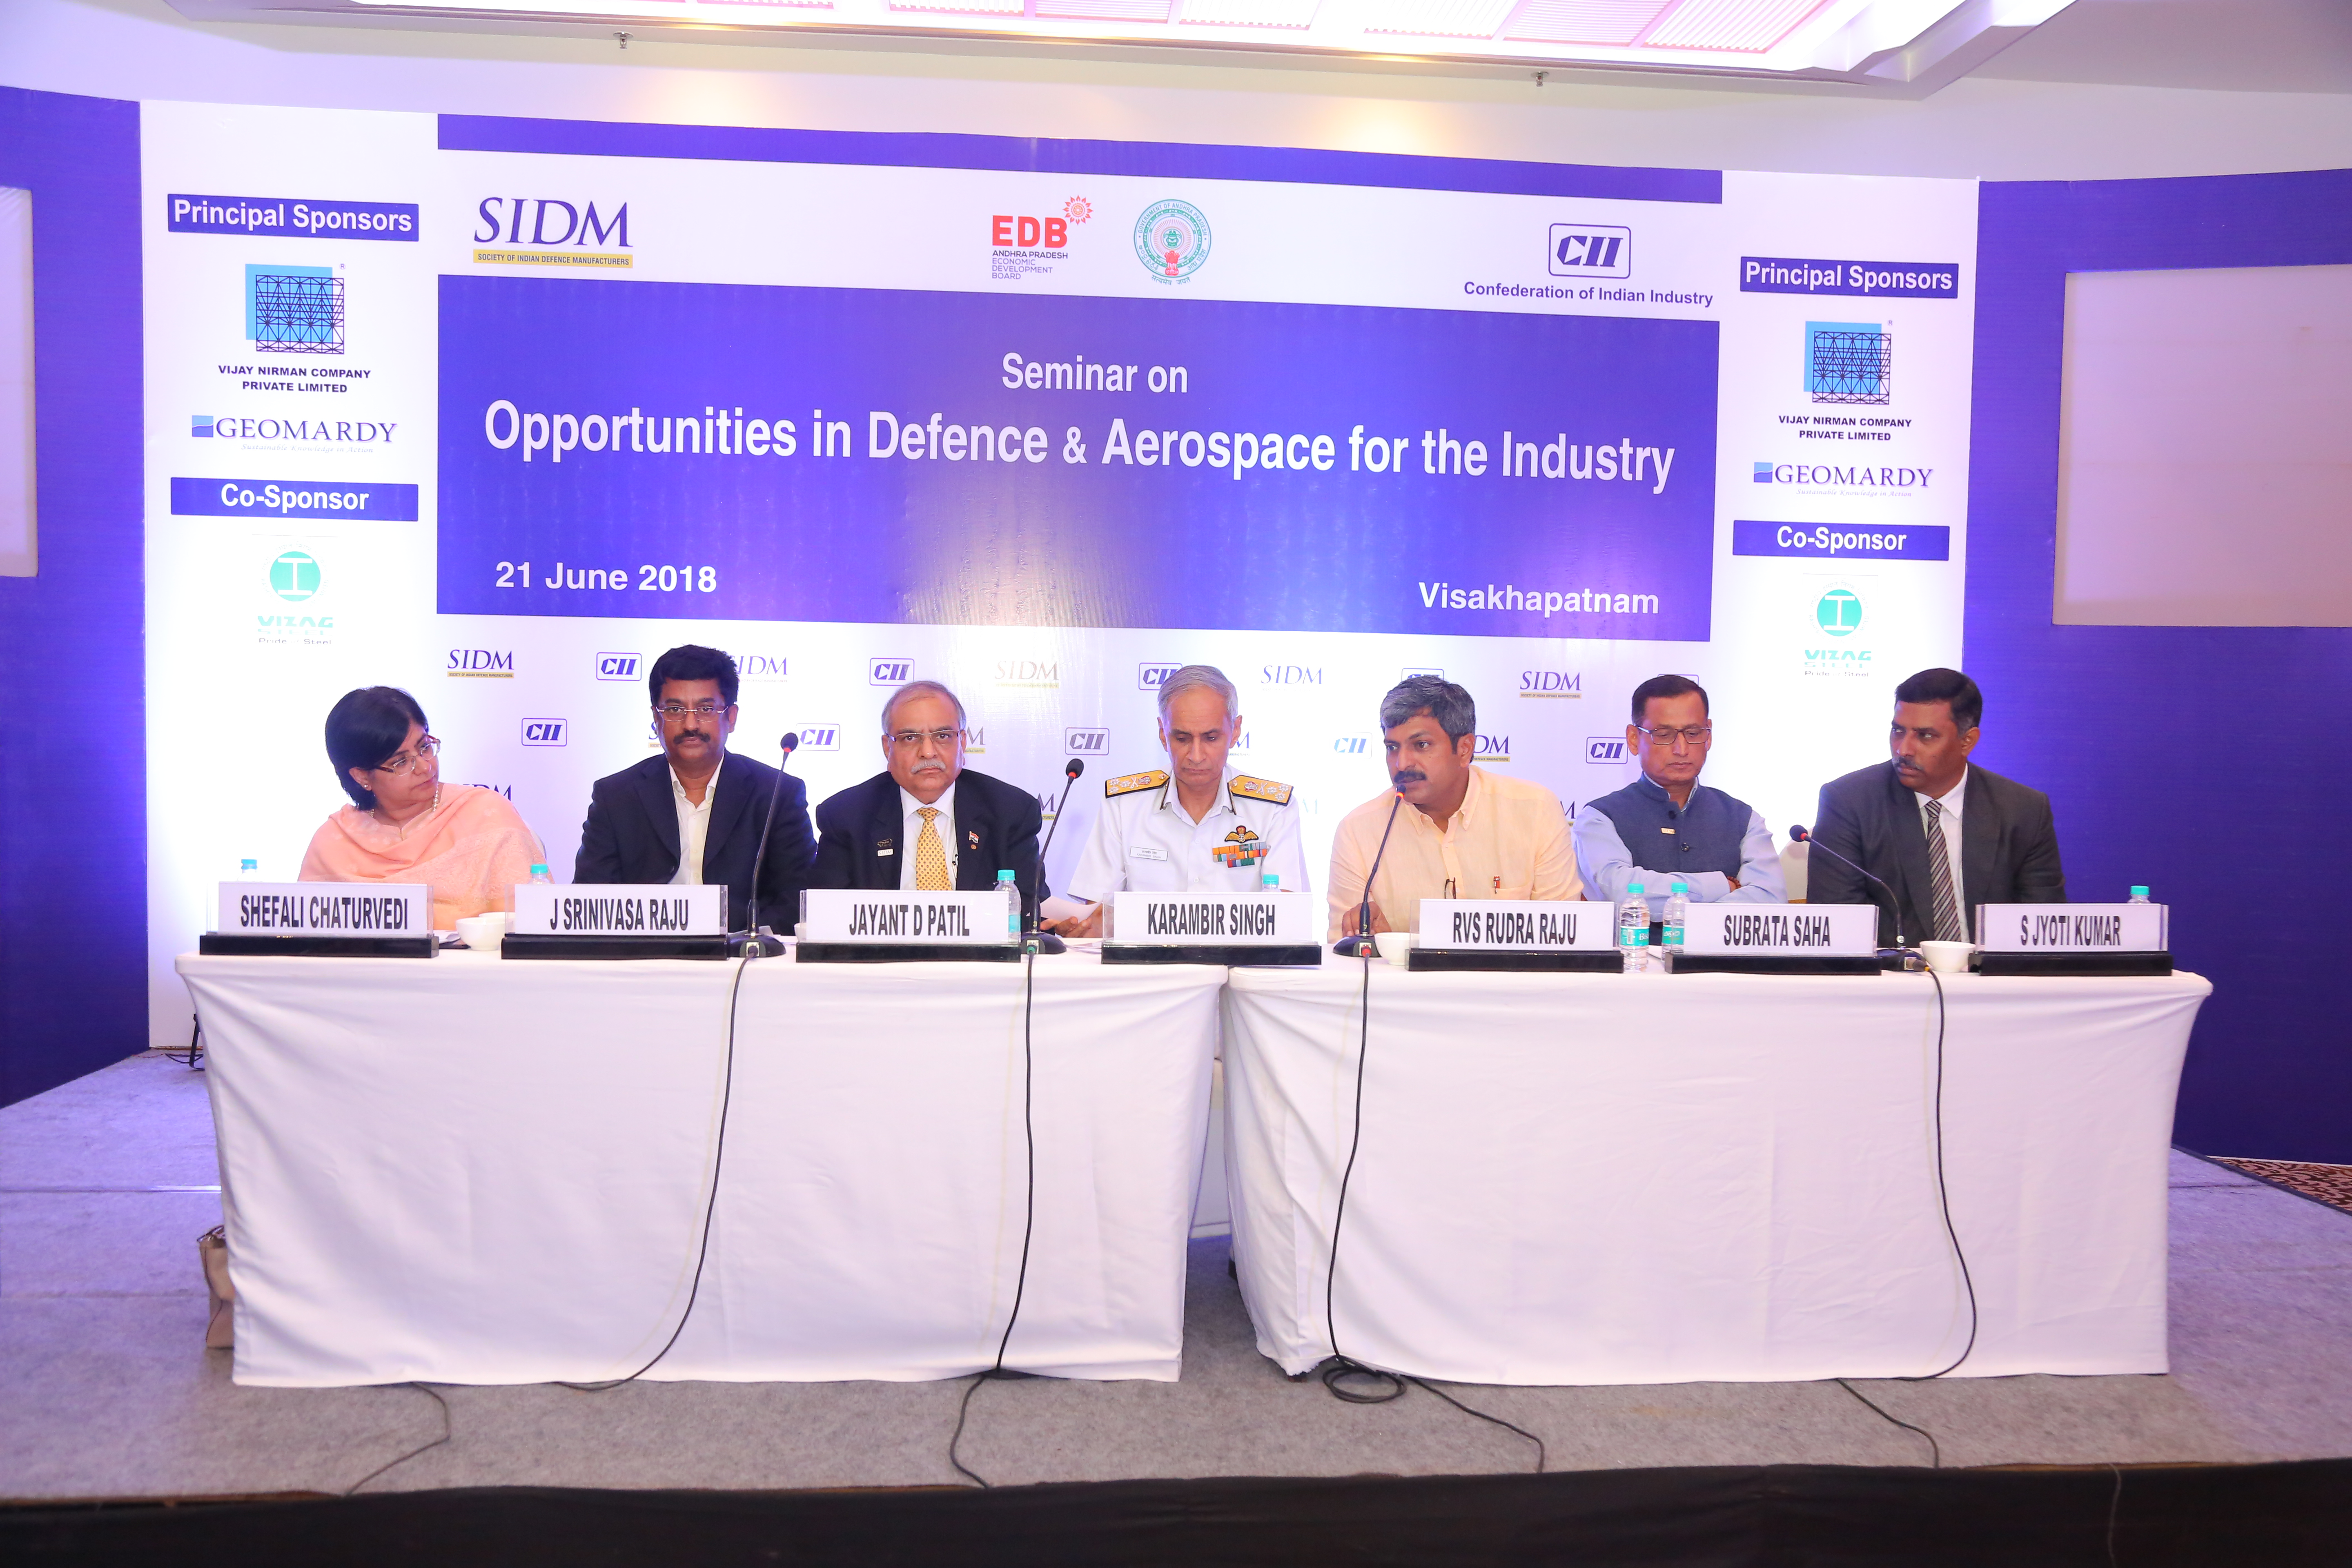 Seminar on Opportunities in Defence & Aerospace for the Industry, Vizag